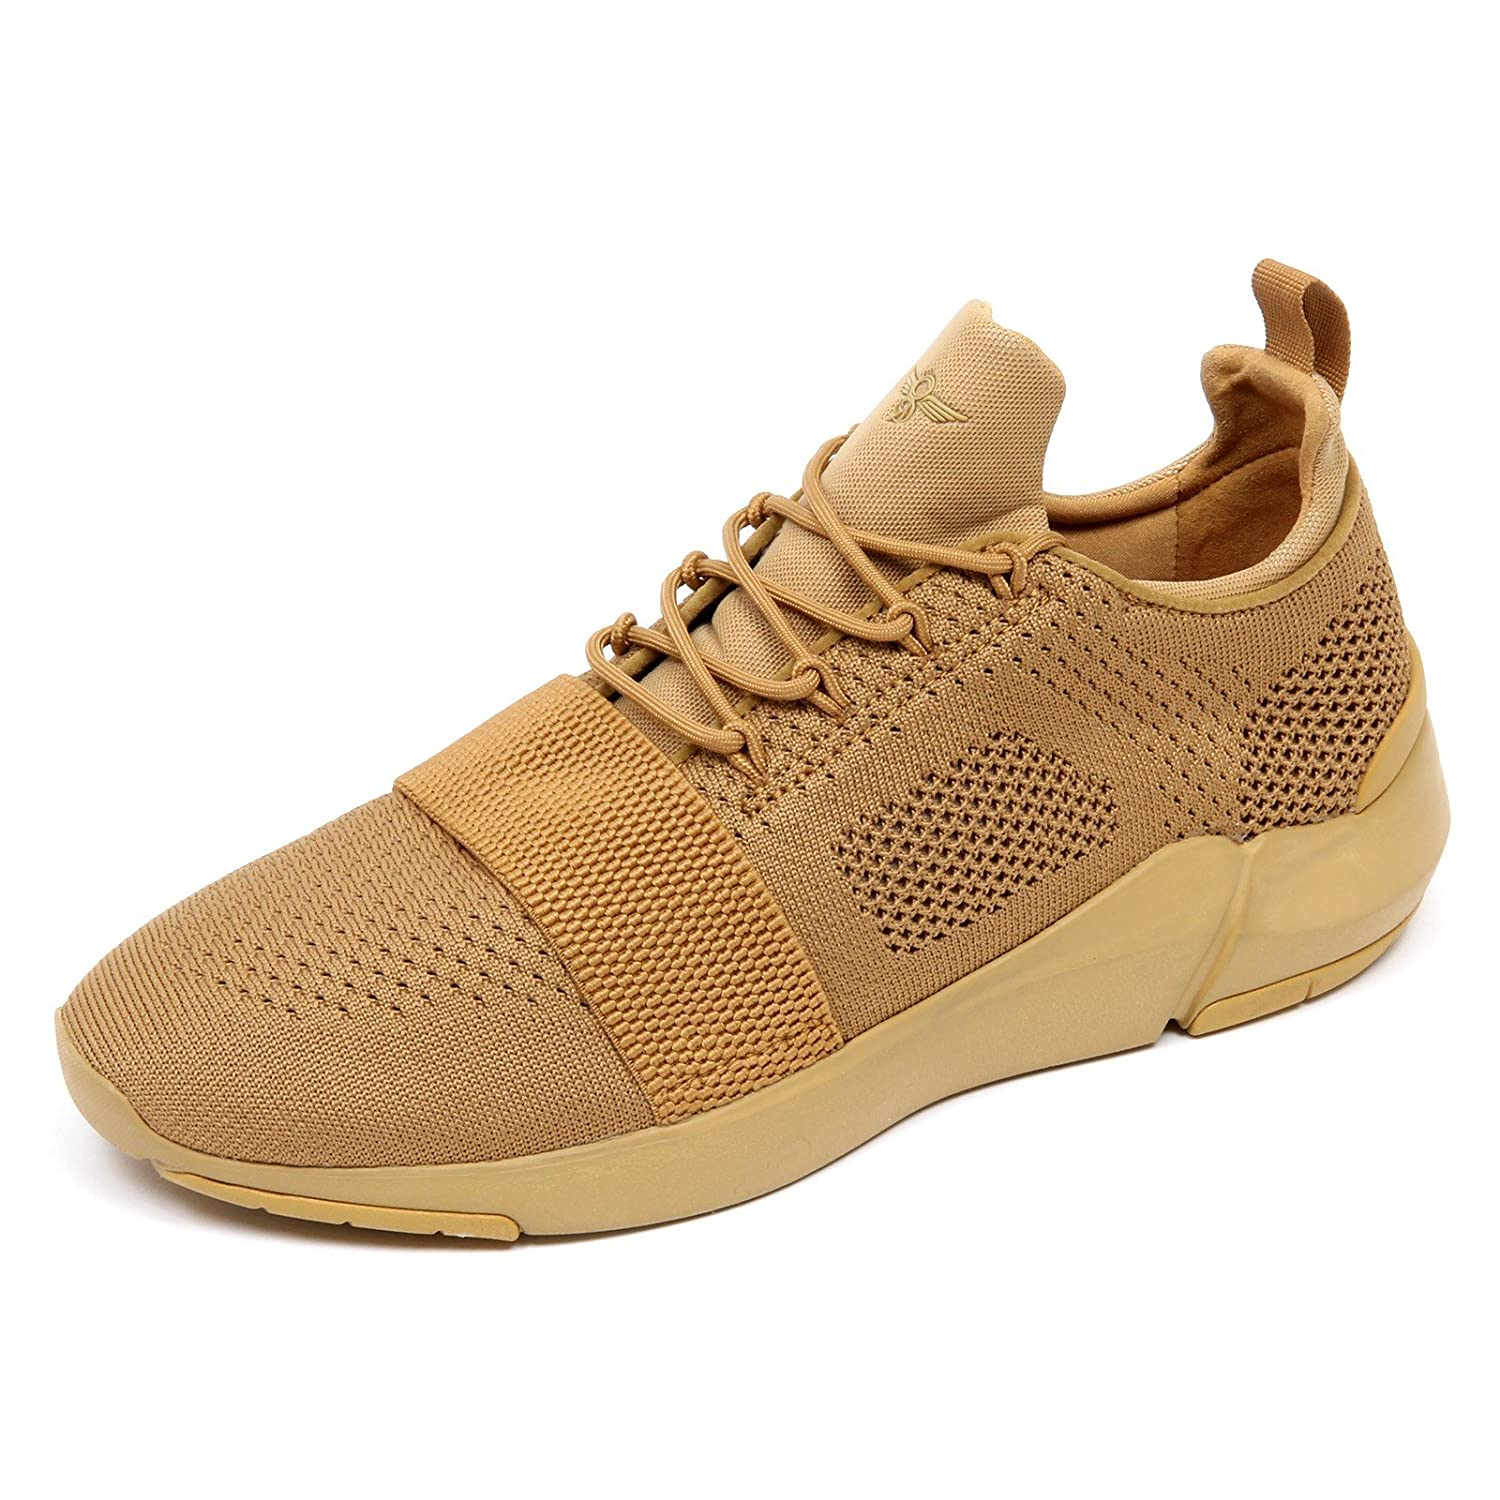 Creative Recreation D4660 (Without Box) Turnschuhe herren Sand schuhe schuhe schuhe Man 2ceedb